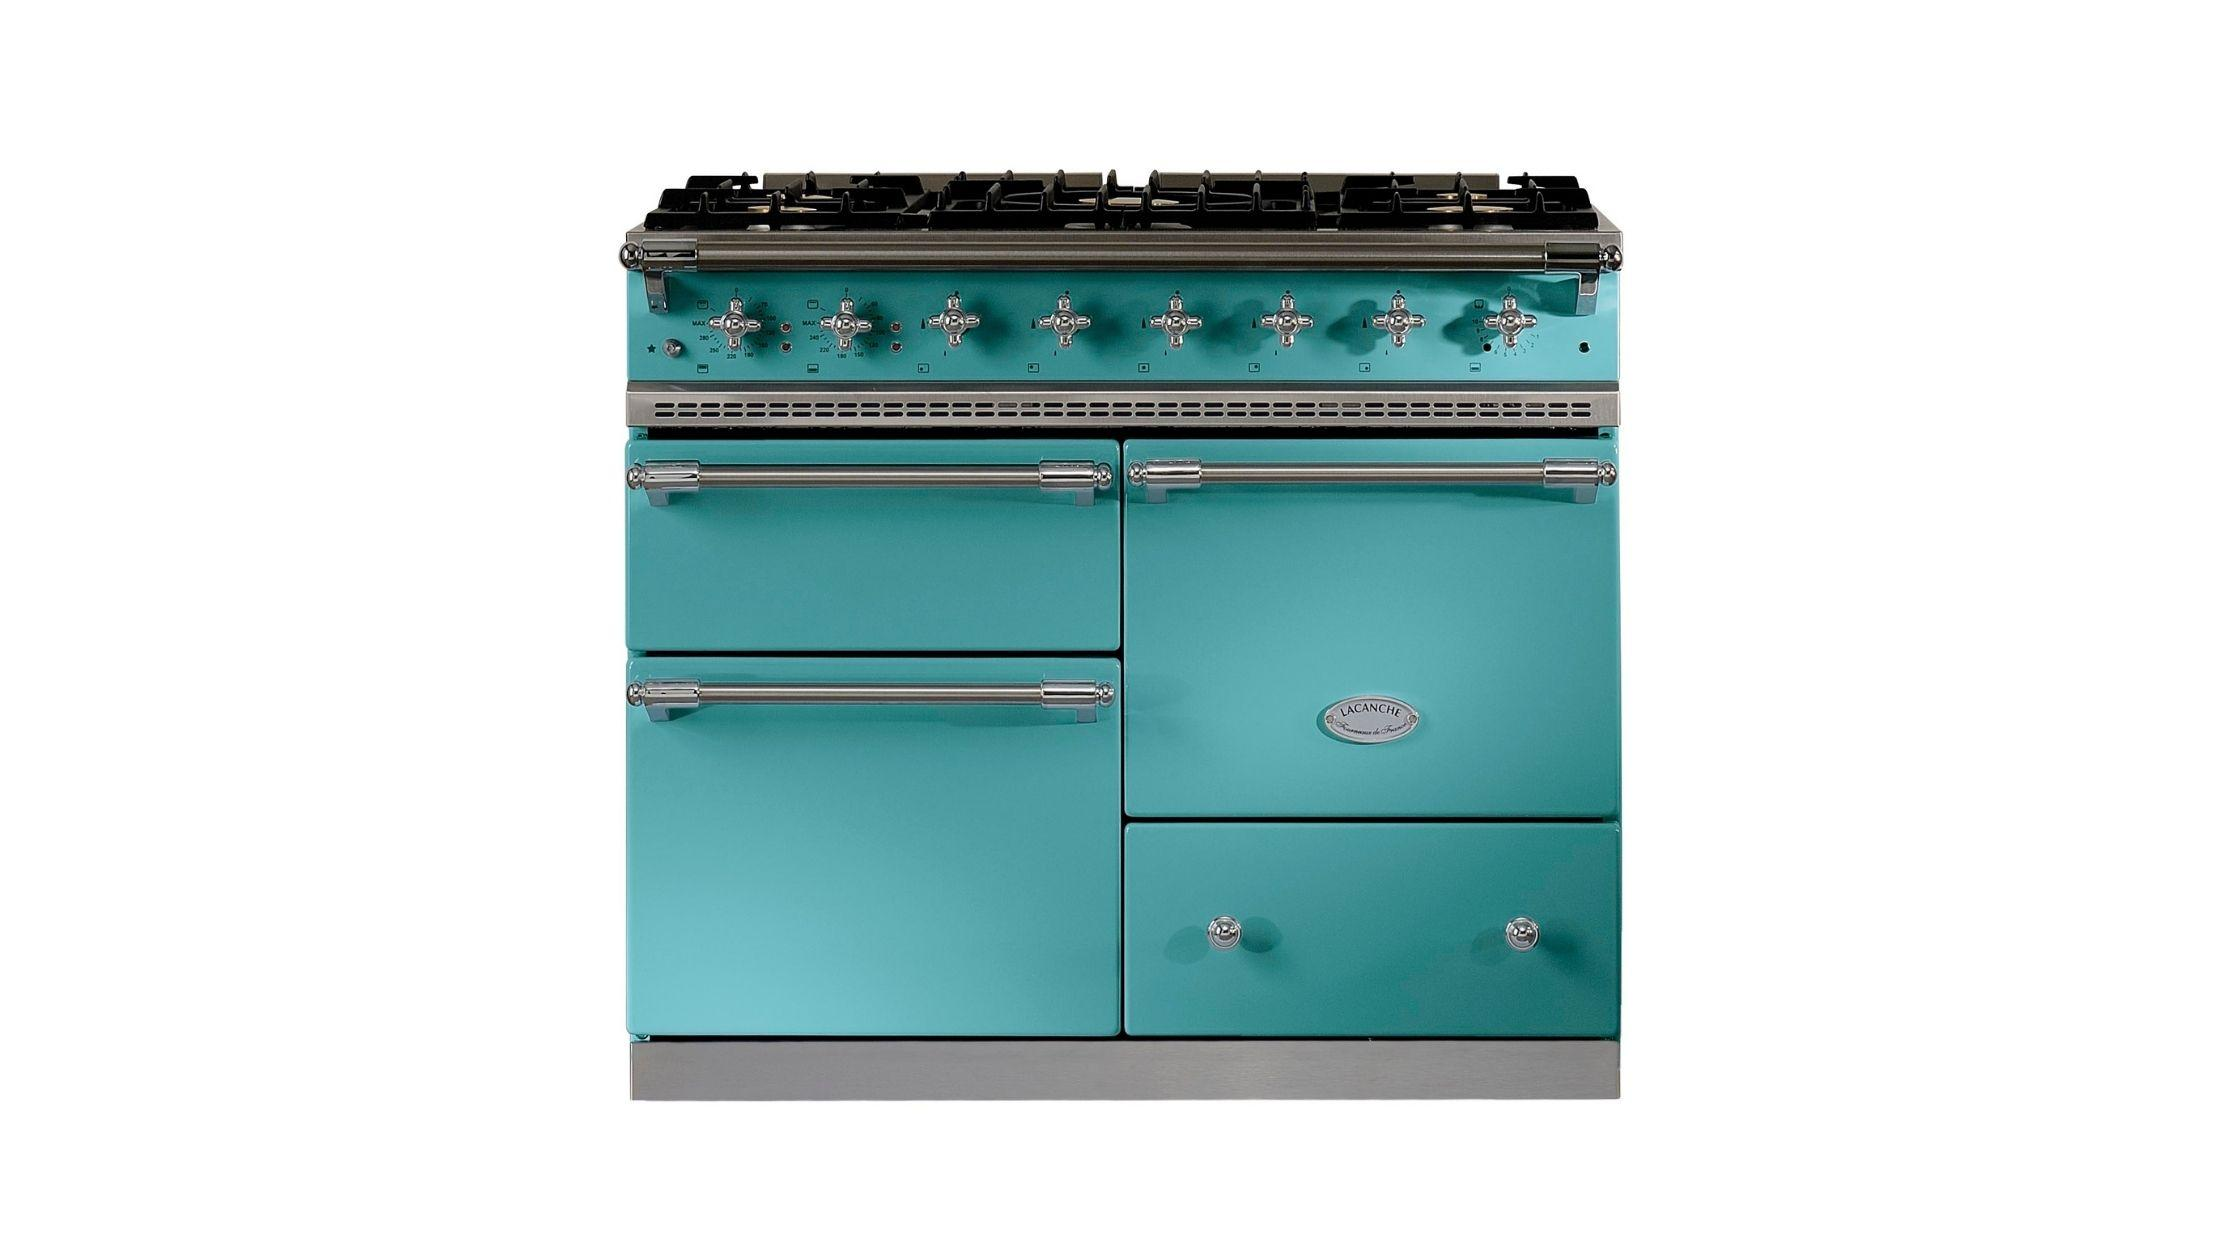 Macon in Teal Blue with Chrome Trim